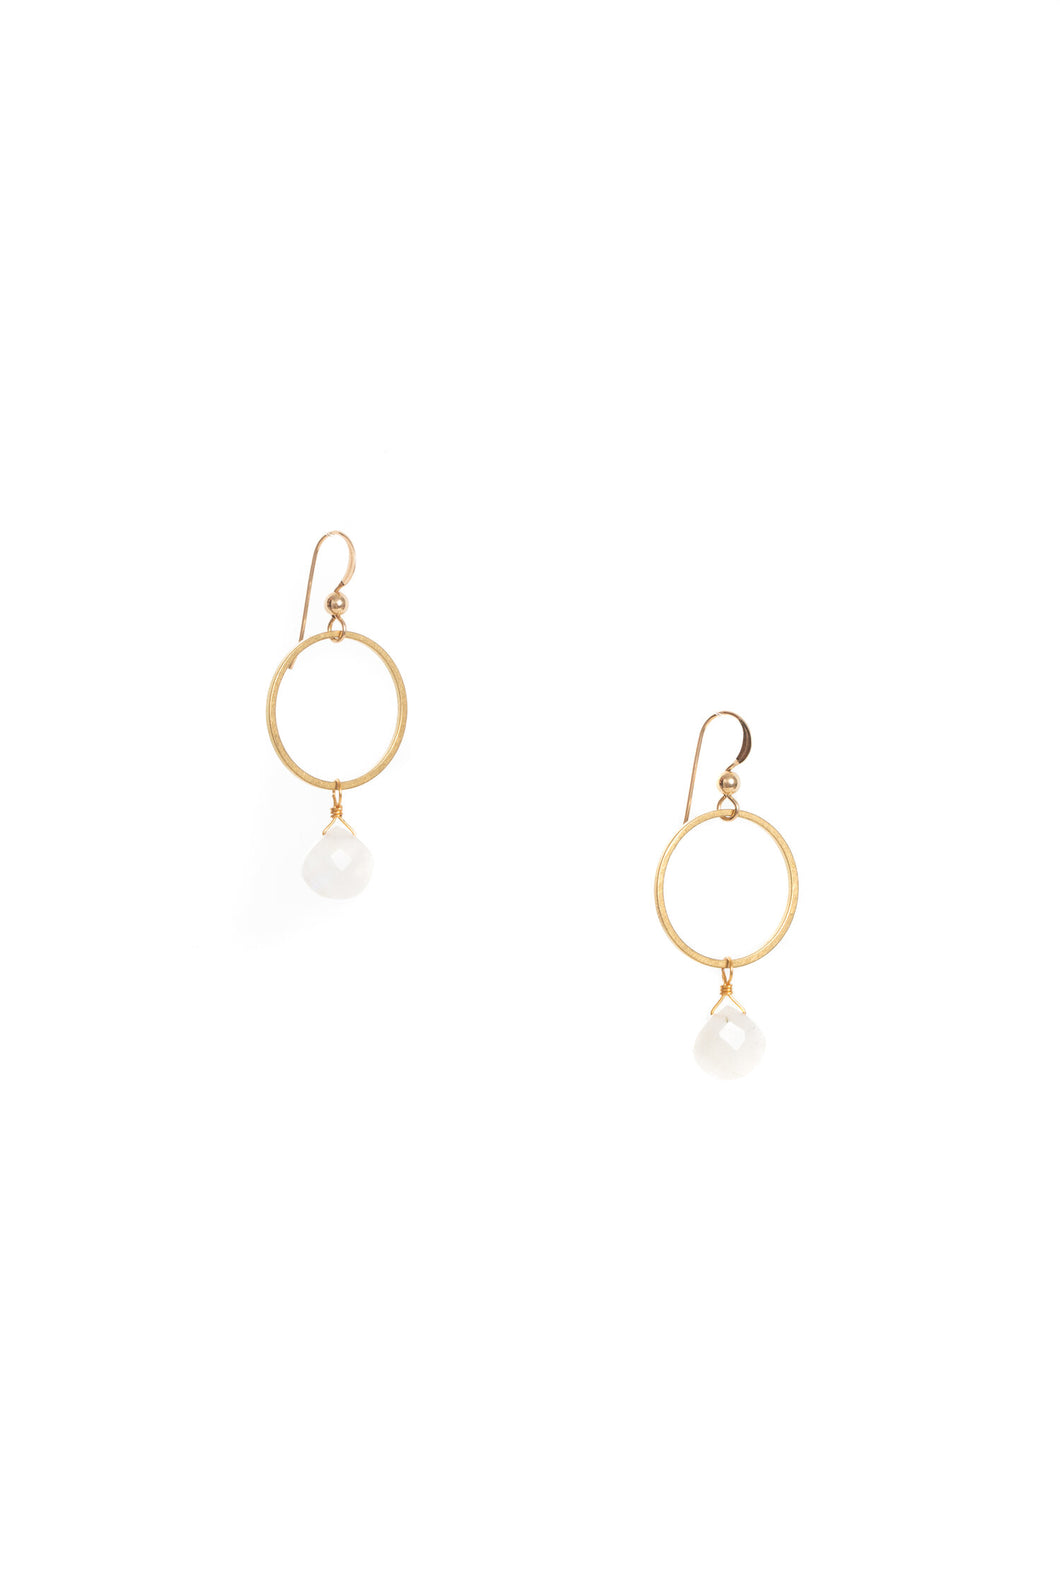 Hailey Gerrits | Rhea Earrings - Moonstone